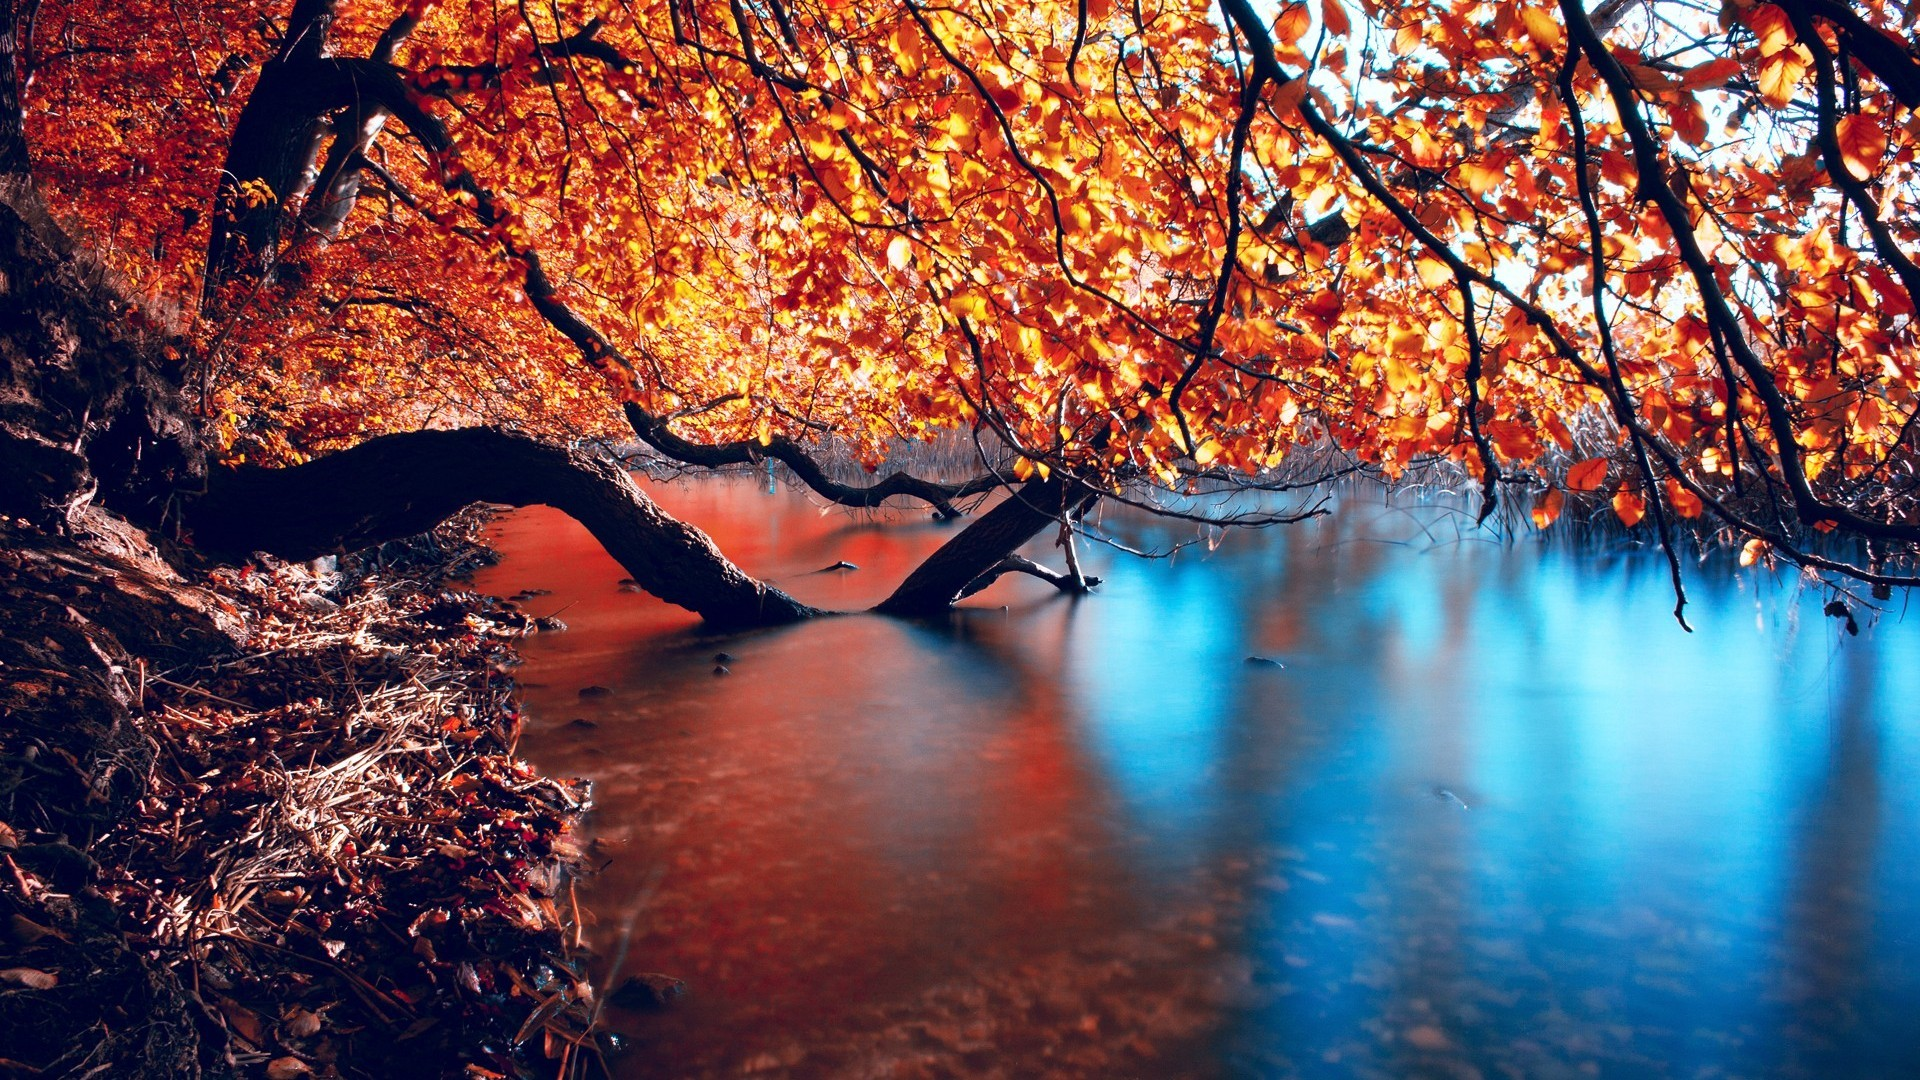 Autumn Background Wallpapers WIN10 THEMES 1920x1080